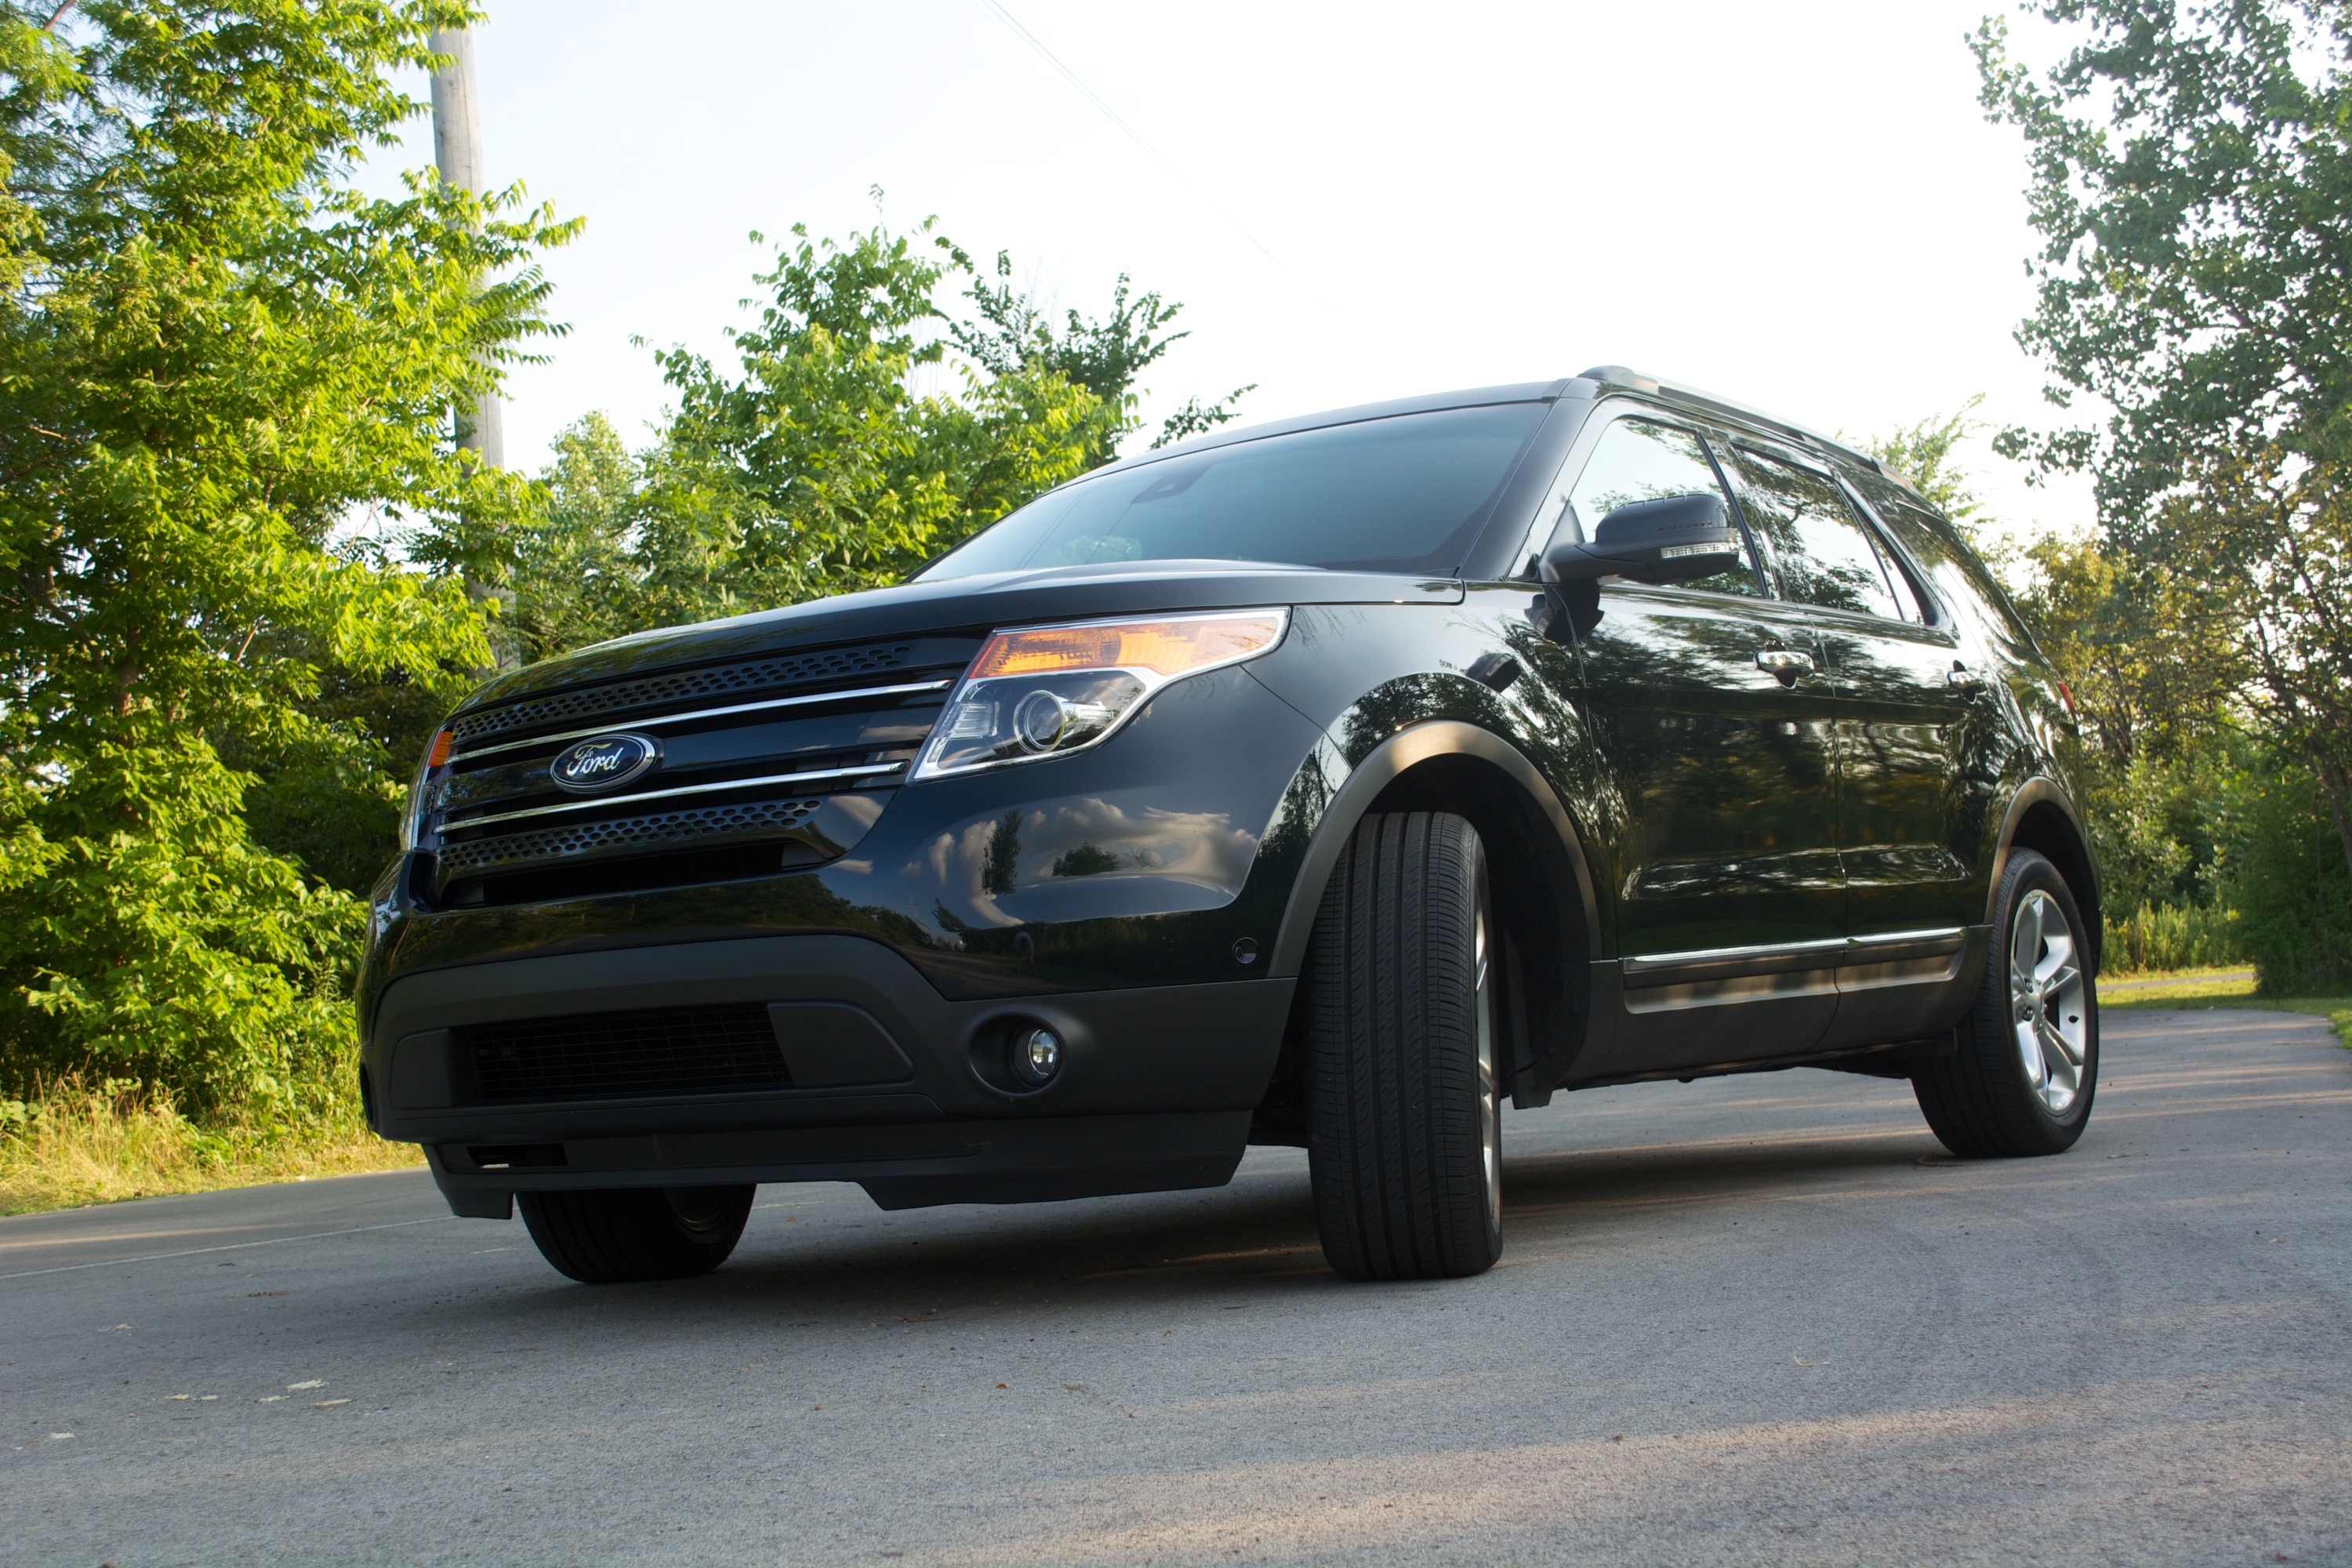 2014 ford explorer limited review 10 motor review. Cars Review. Best American Auto & Cars Review